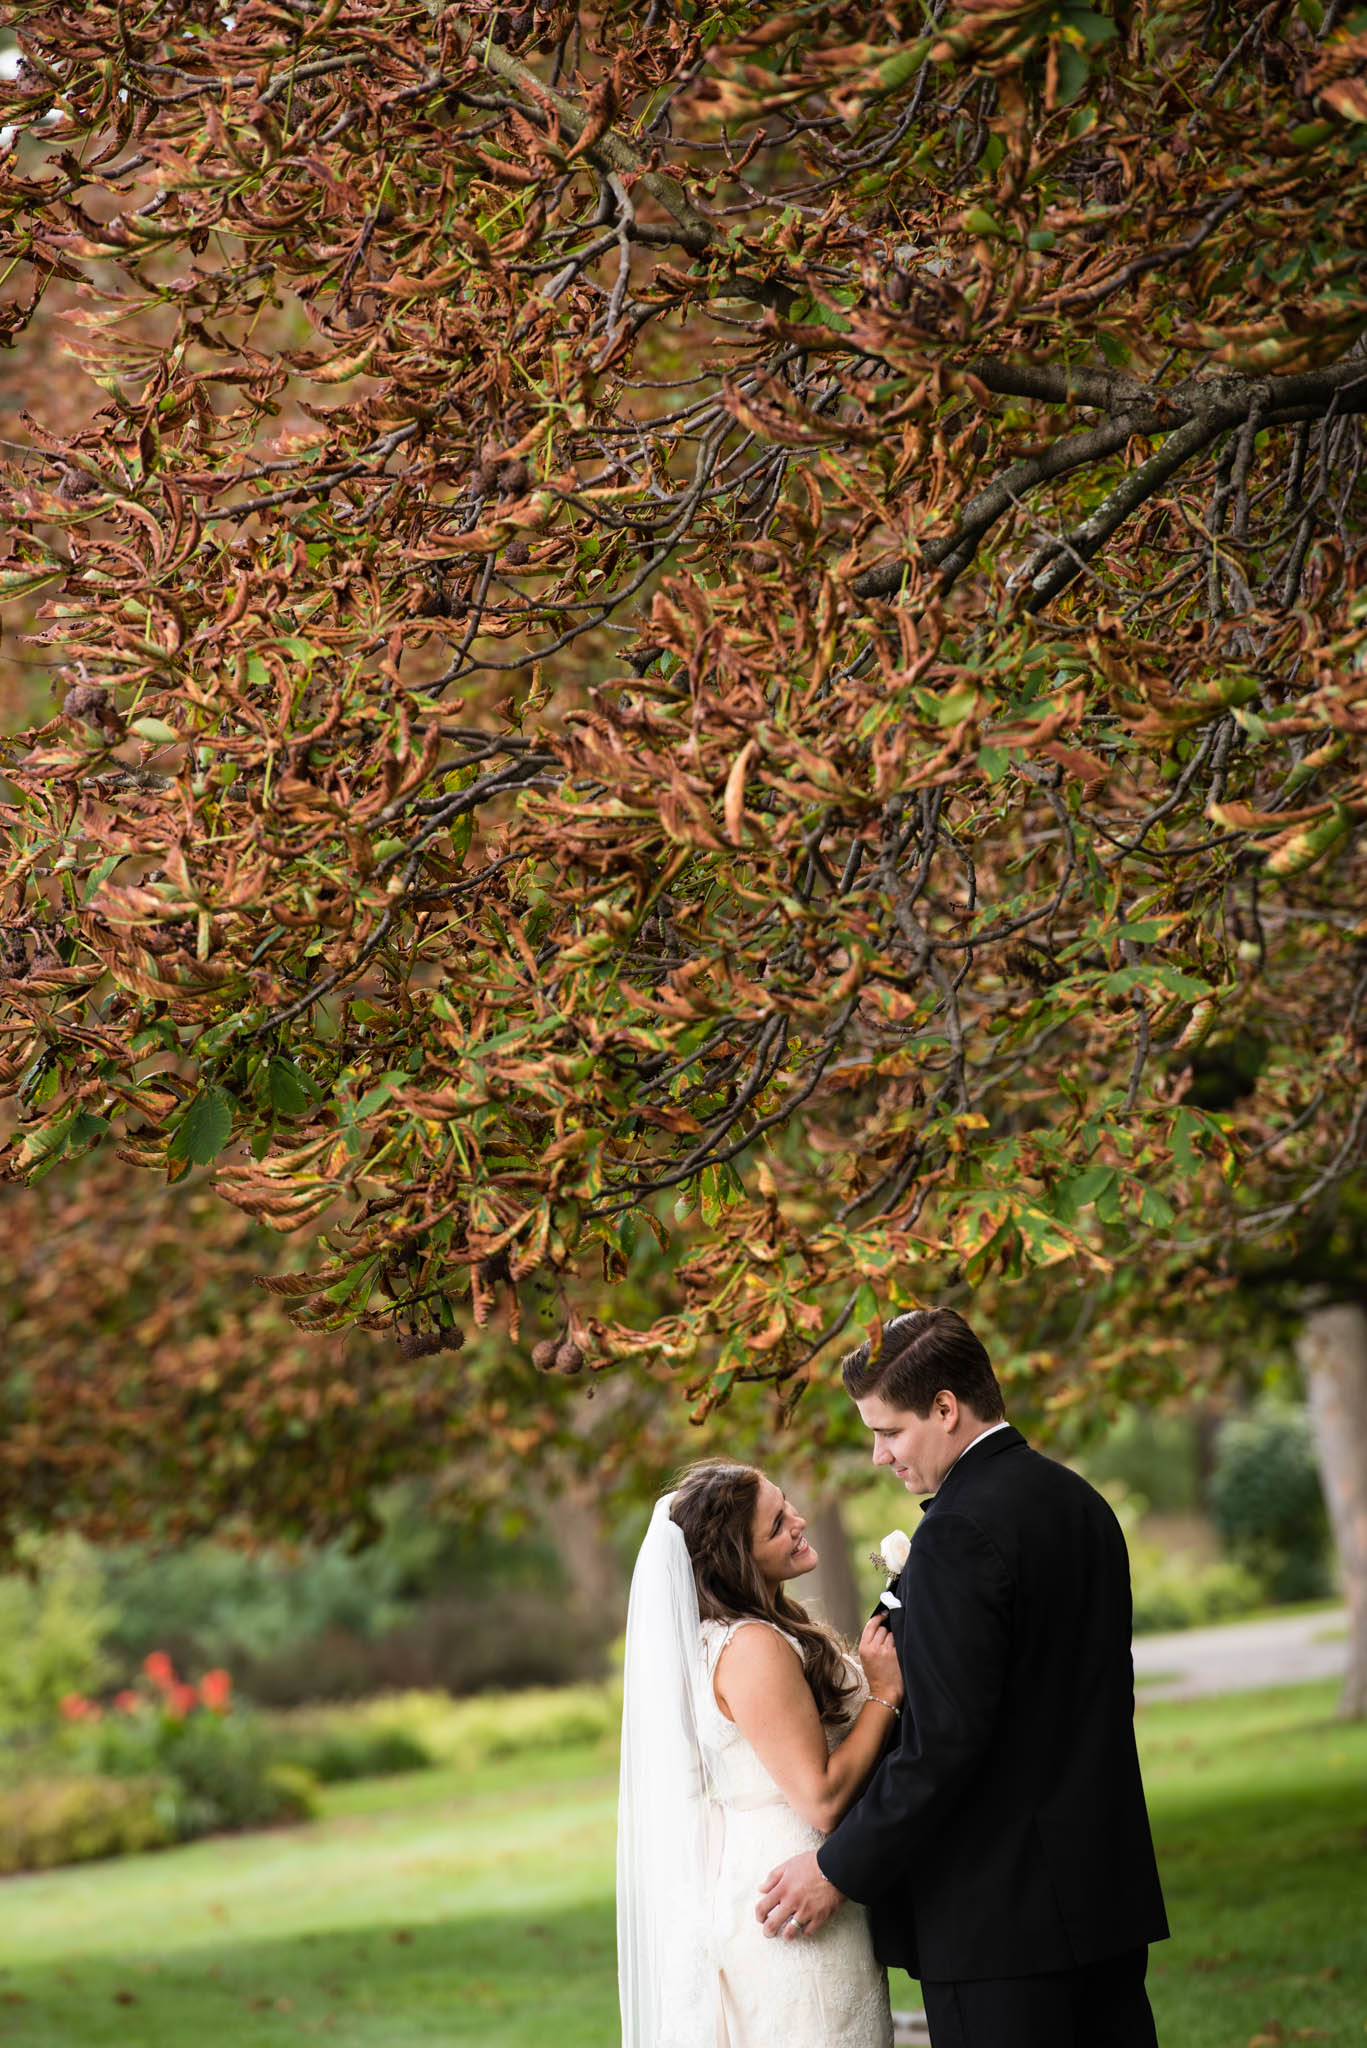 Beautiful fall wedding colors portrait.